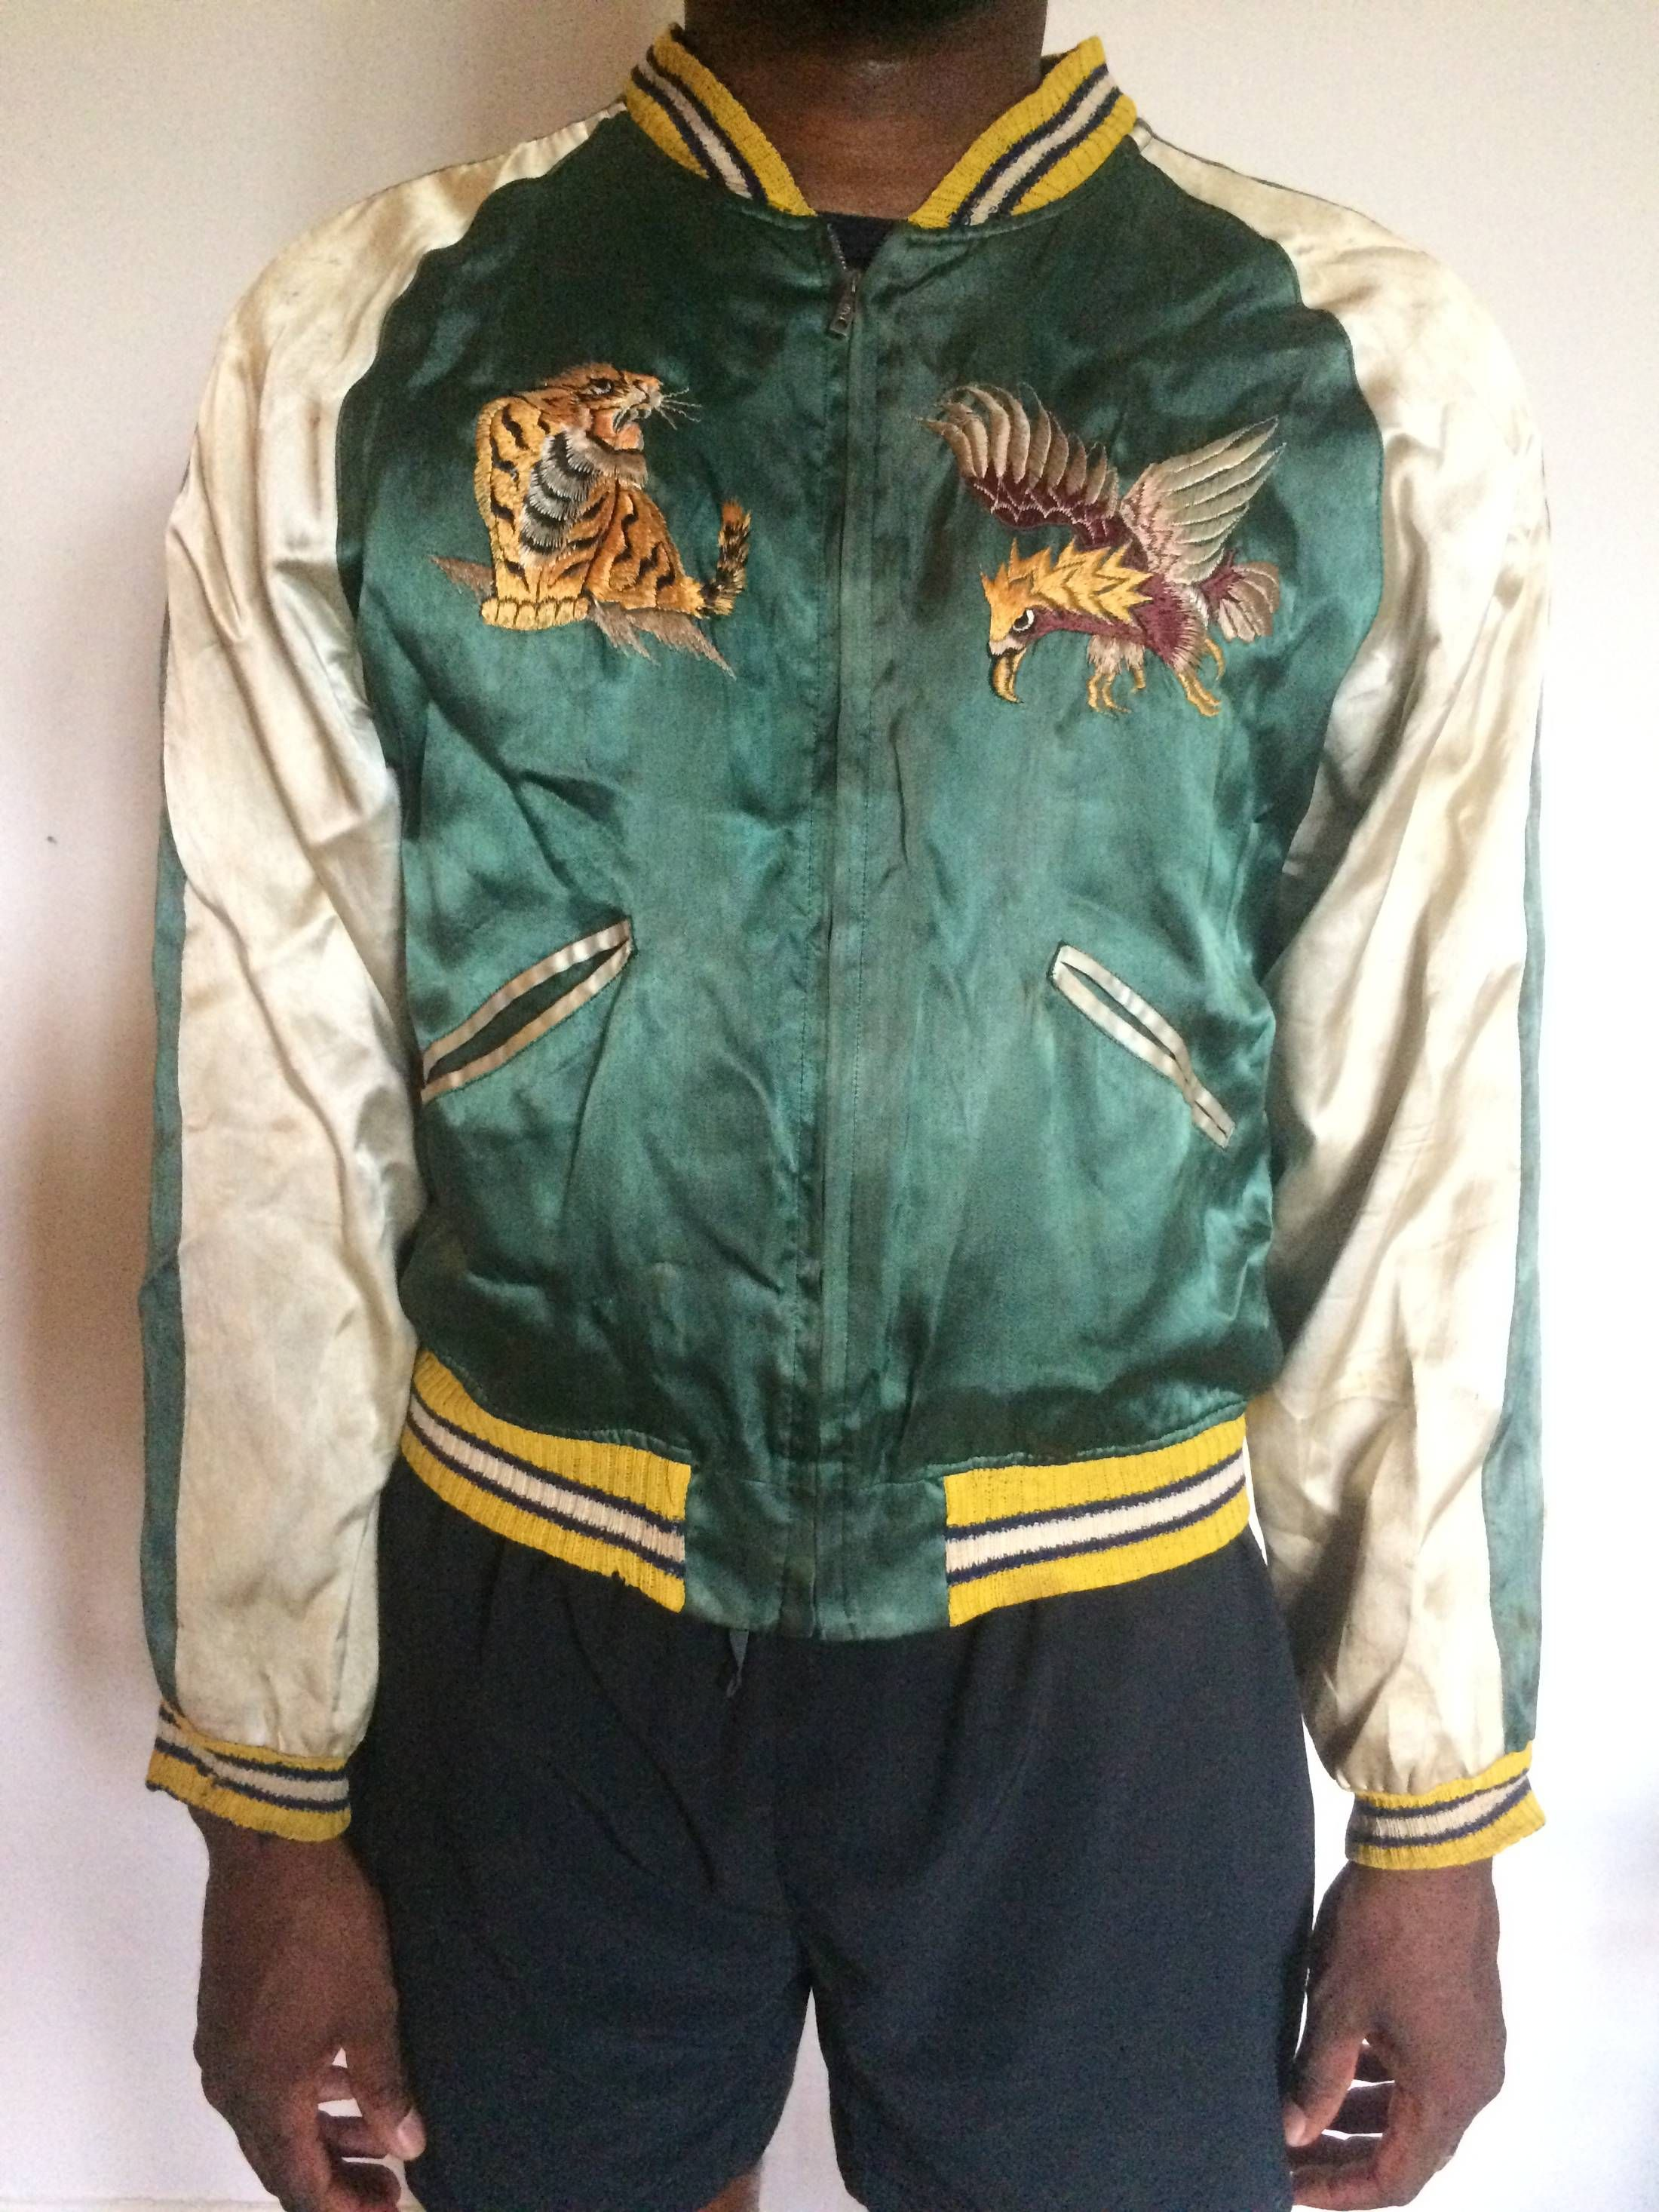 Vintage Vintage Sukajan Souvenir Jacket Japan Tour of Duty